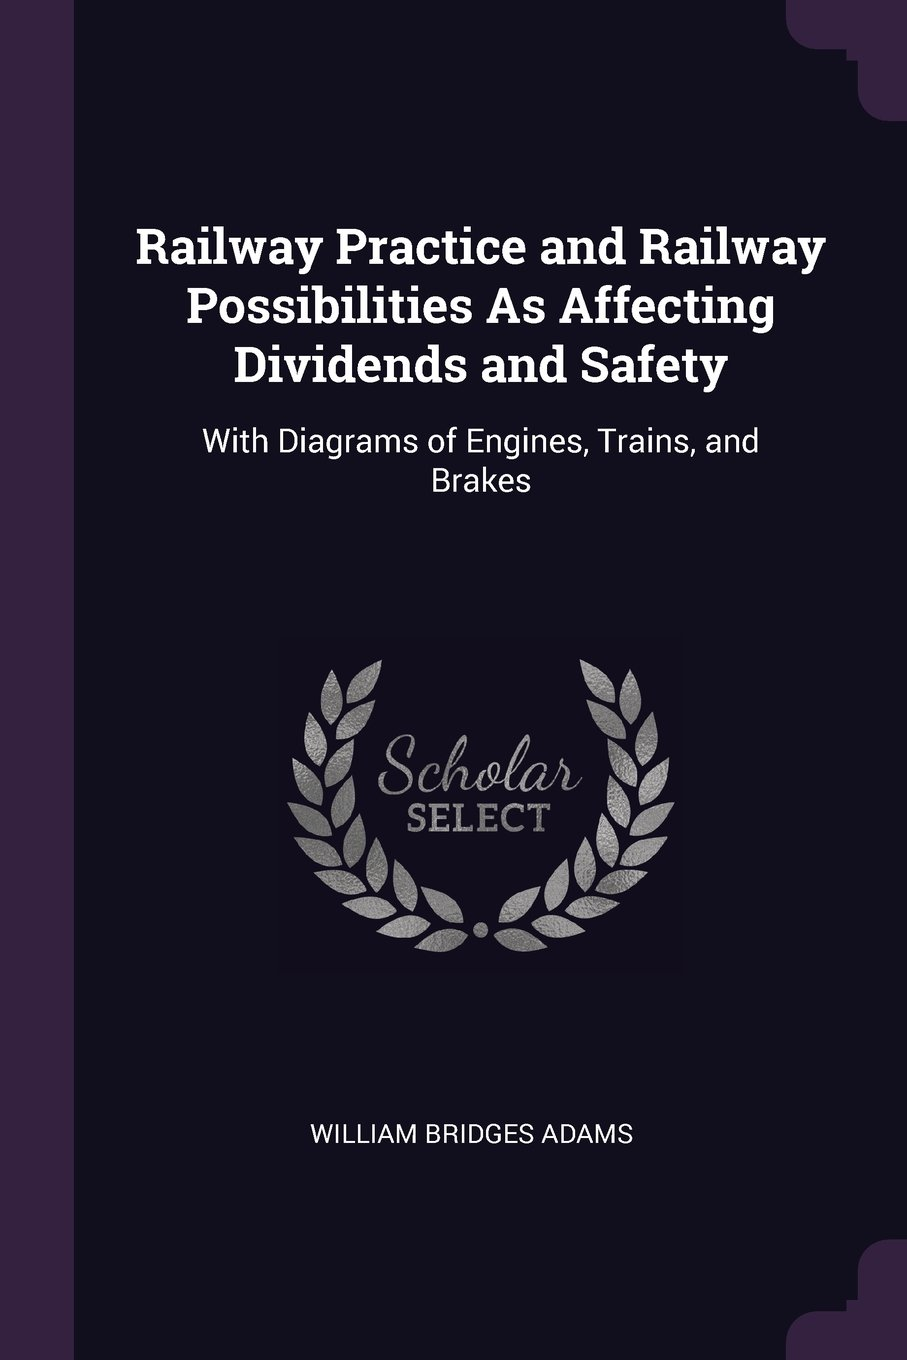 Download Railway Practice and Railway Possibilities As Affecting Dividends and Safety: With Diagrams of Engines, Trains, and Brakes PDF